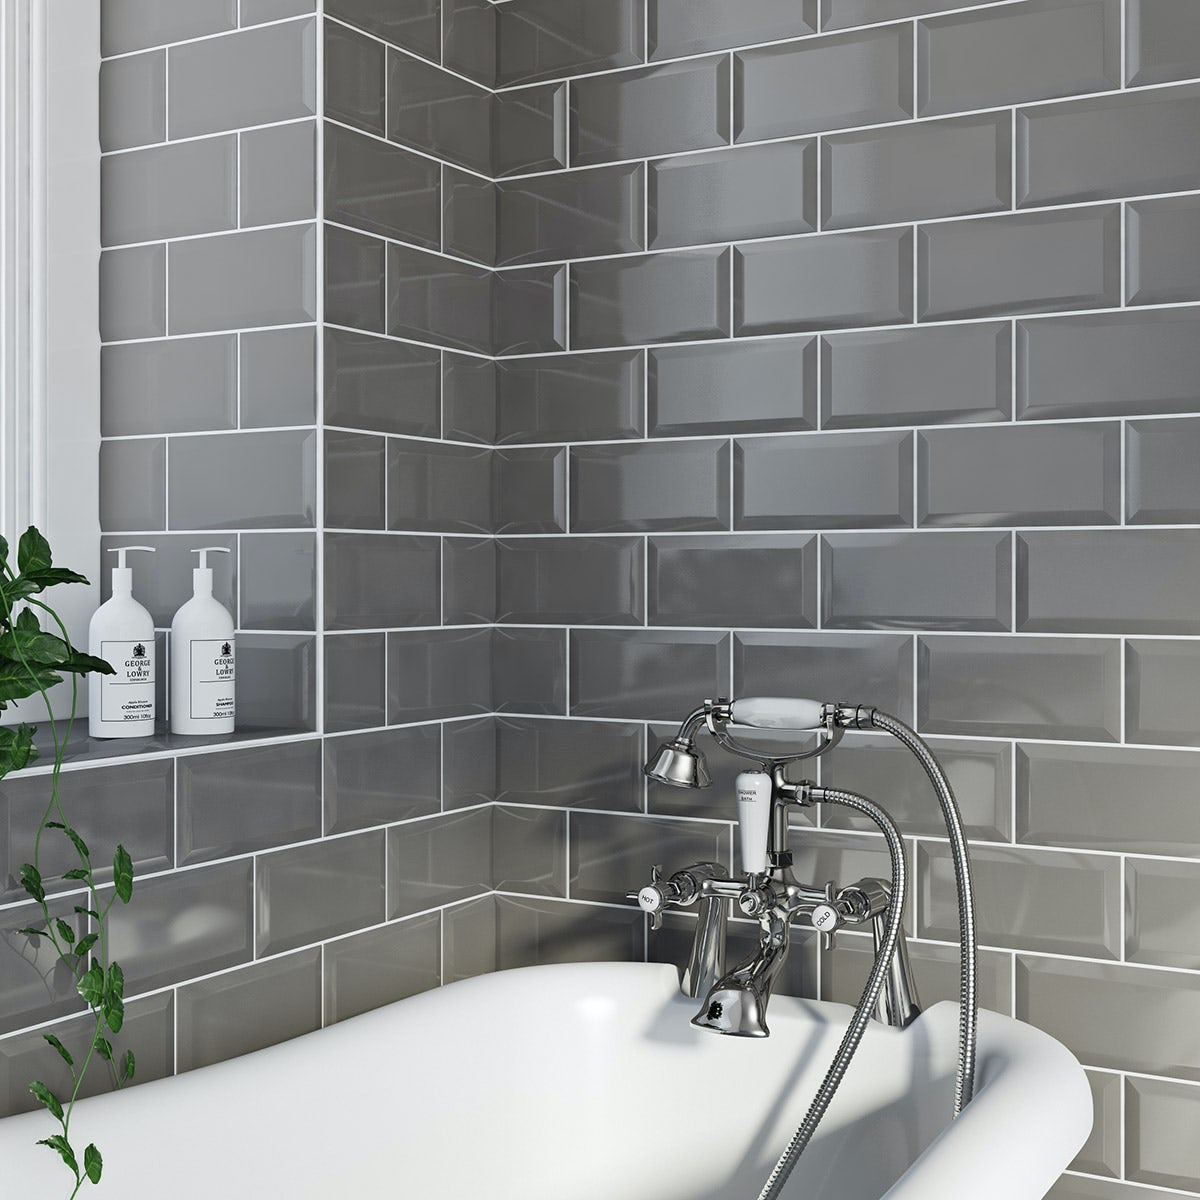 British ceramic tile metro bevel grey gloss tile 100mm x 200mm british ceramic tile metro bevel grey gloss tile 100mm x 200mm dailygadgetfo Image collections